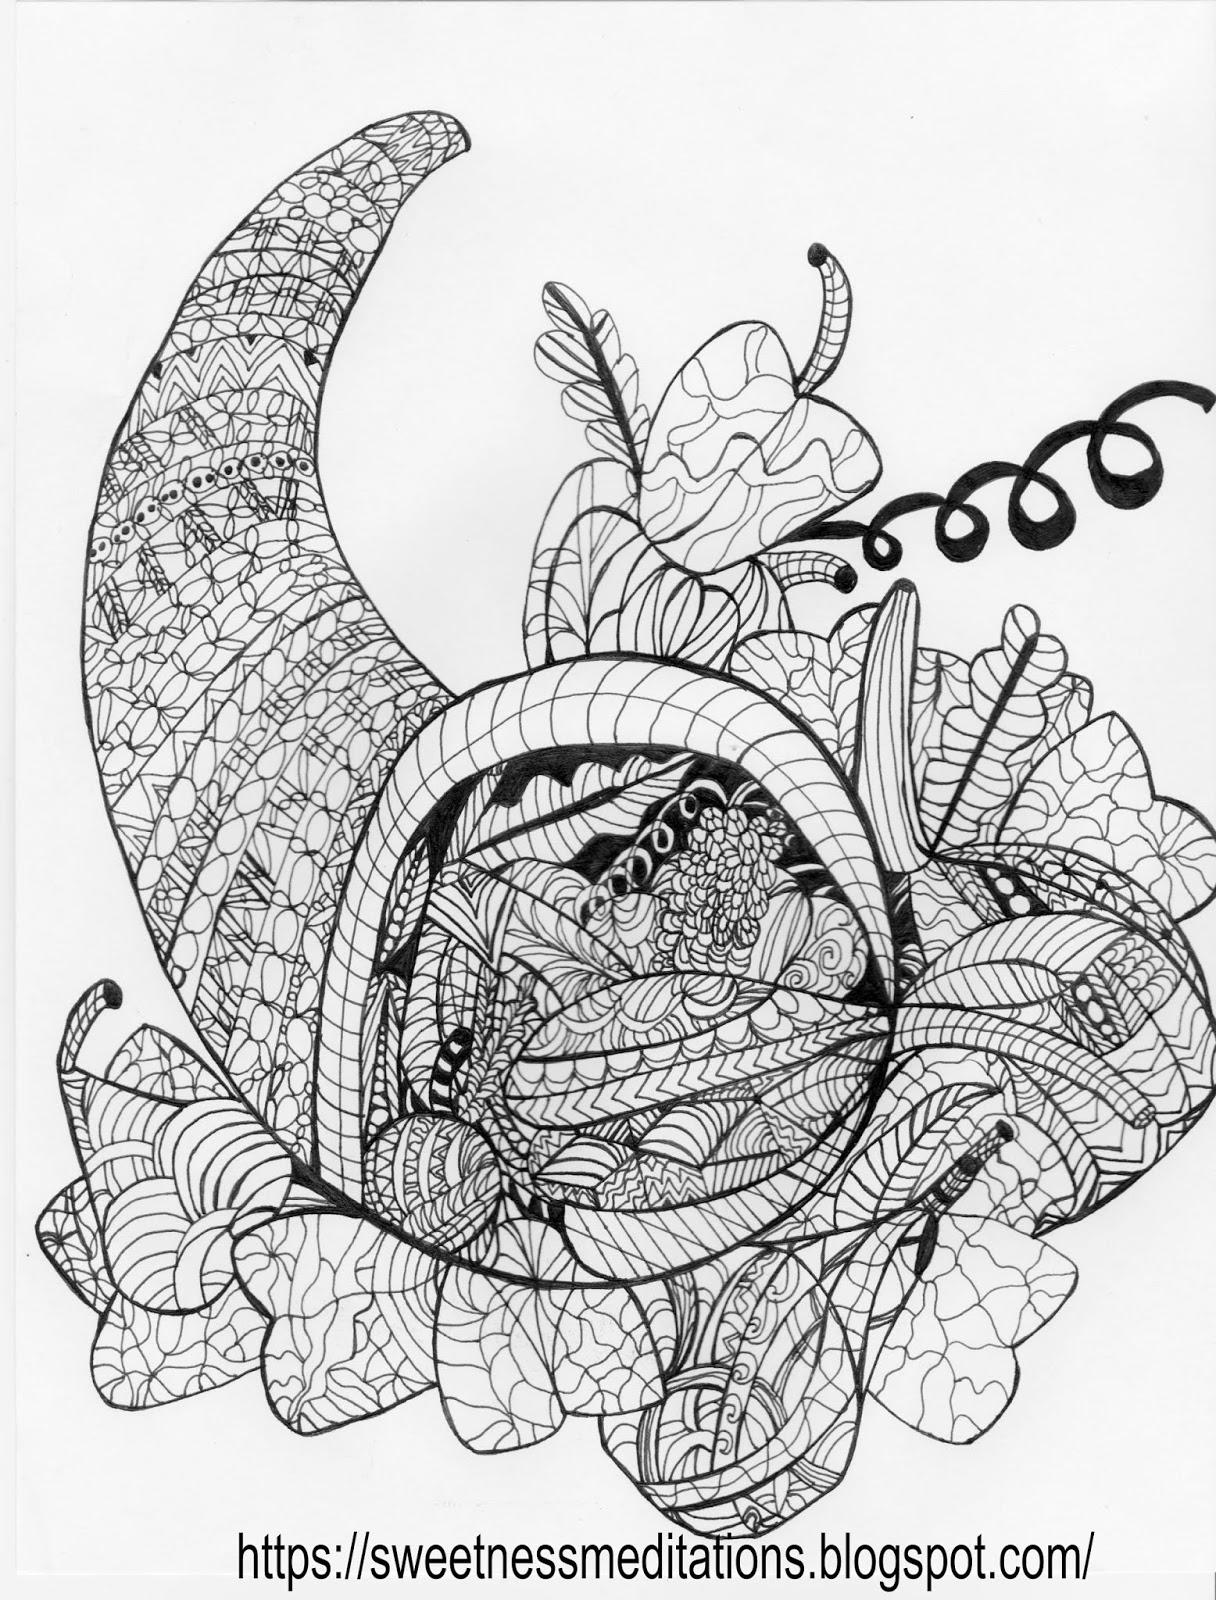 picture of cornucopia to color sweetness meditations thanksgiving coloring pages cornucopia of cornucopia color picture to